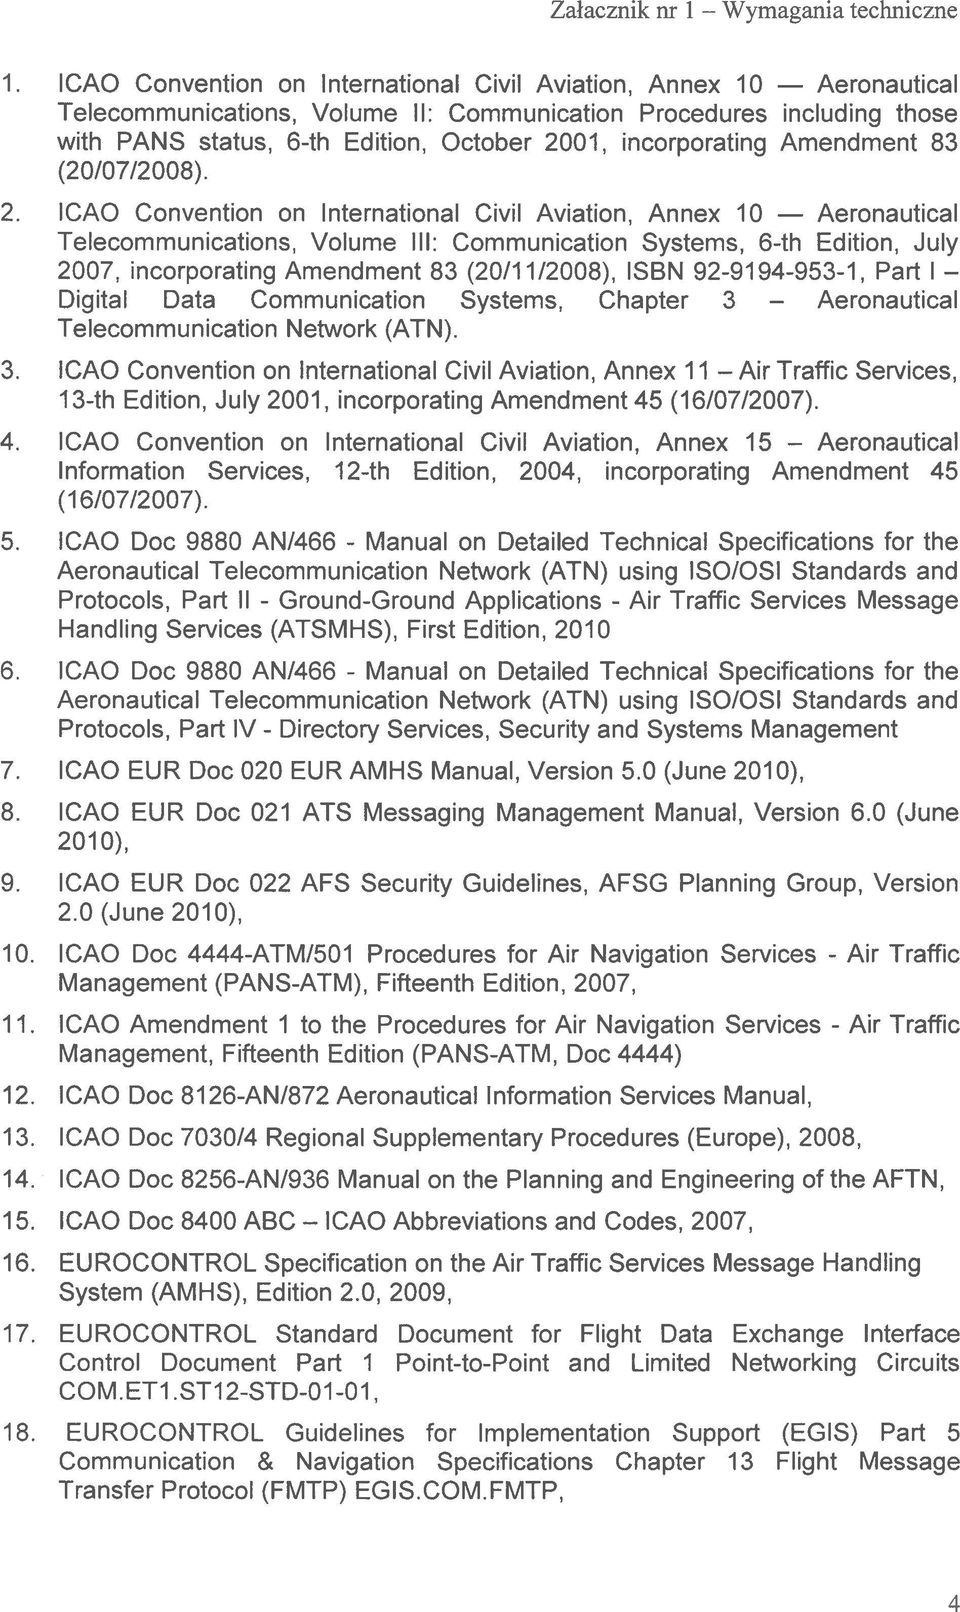 ICAO Conyention on International CiyiI Ayiation, Annex 10 Aeronautical Telecommunications, Volume III: Communication Systems, 6-th Edition, JuIy 2007, incorporaung Amendment 83 (20/1 1/2008), ISBN